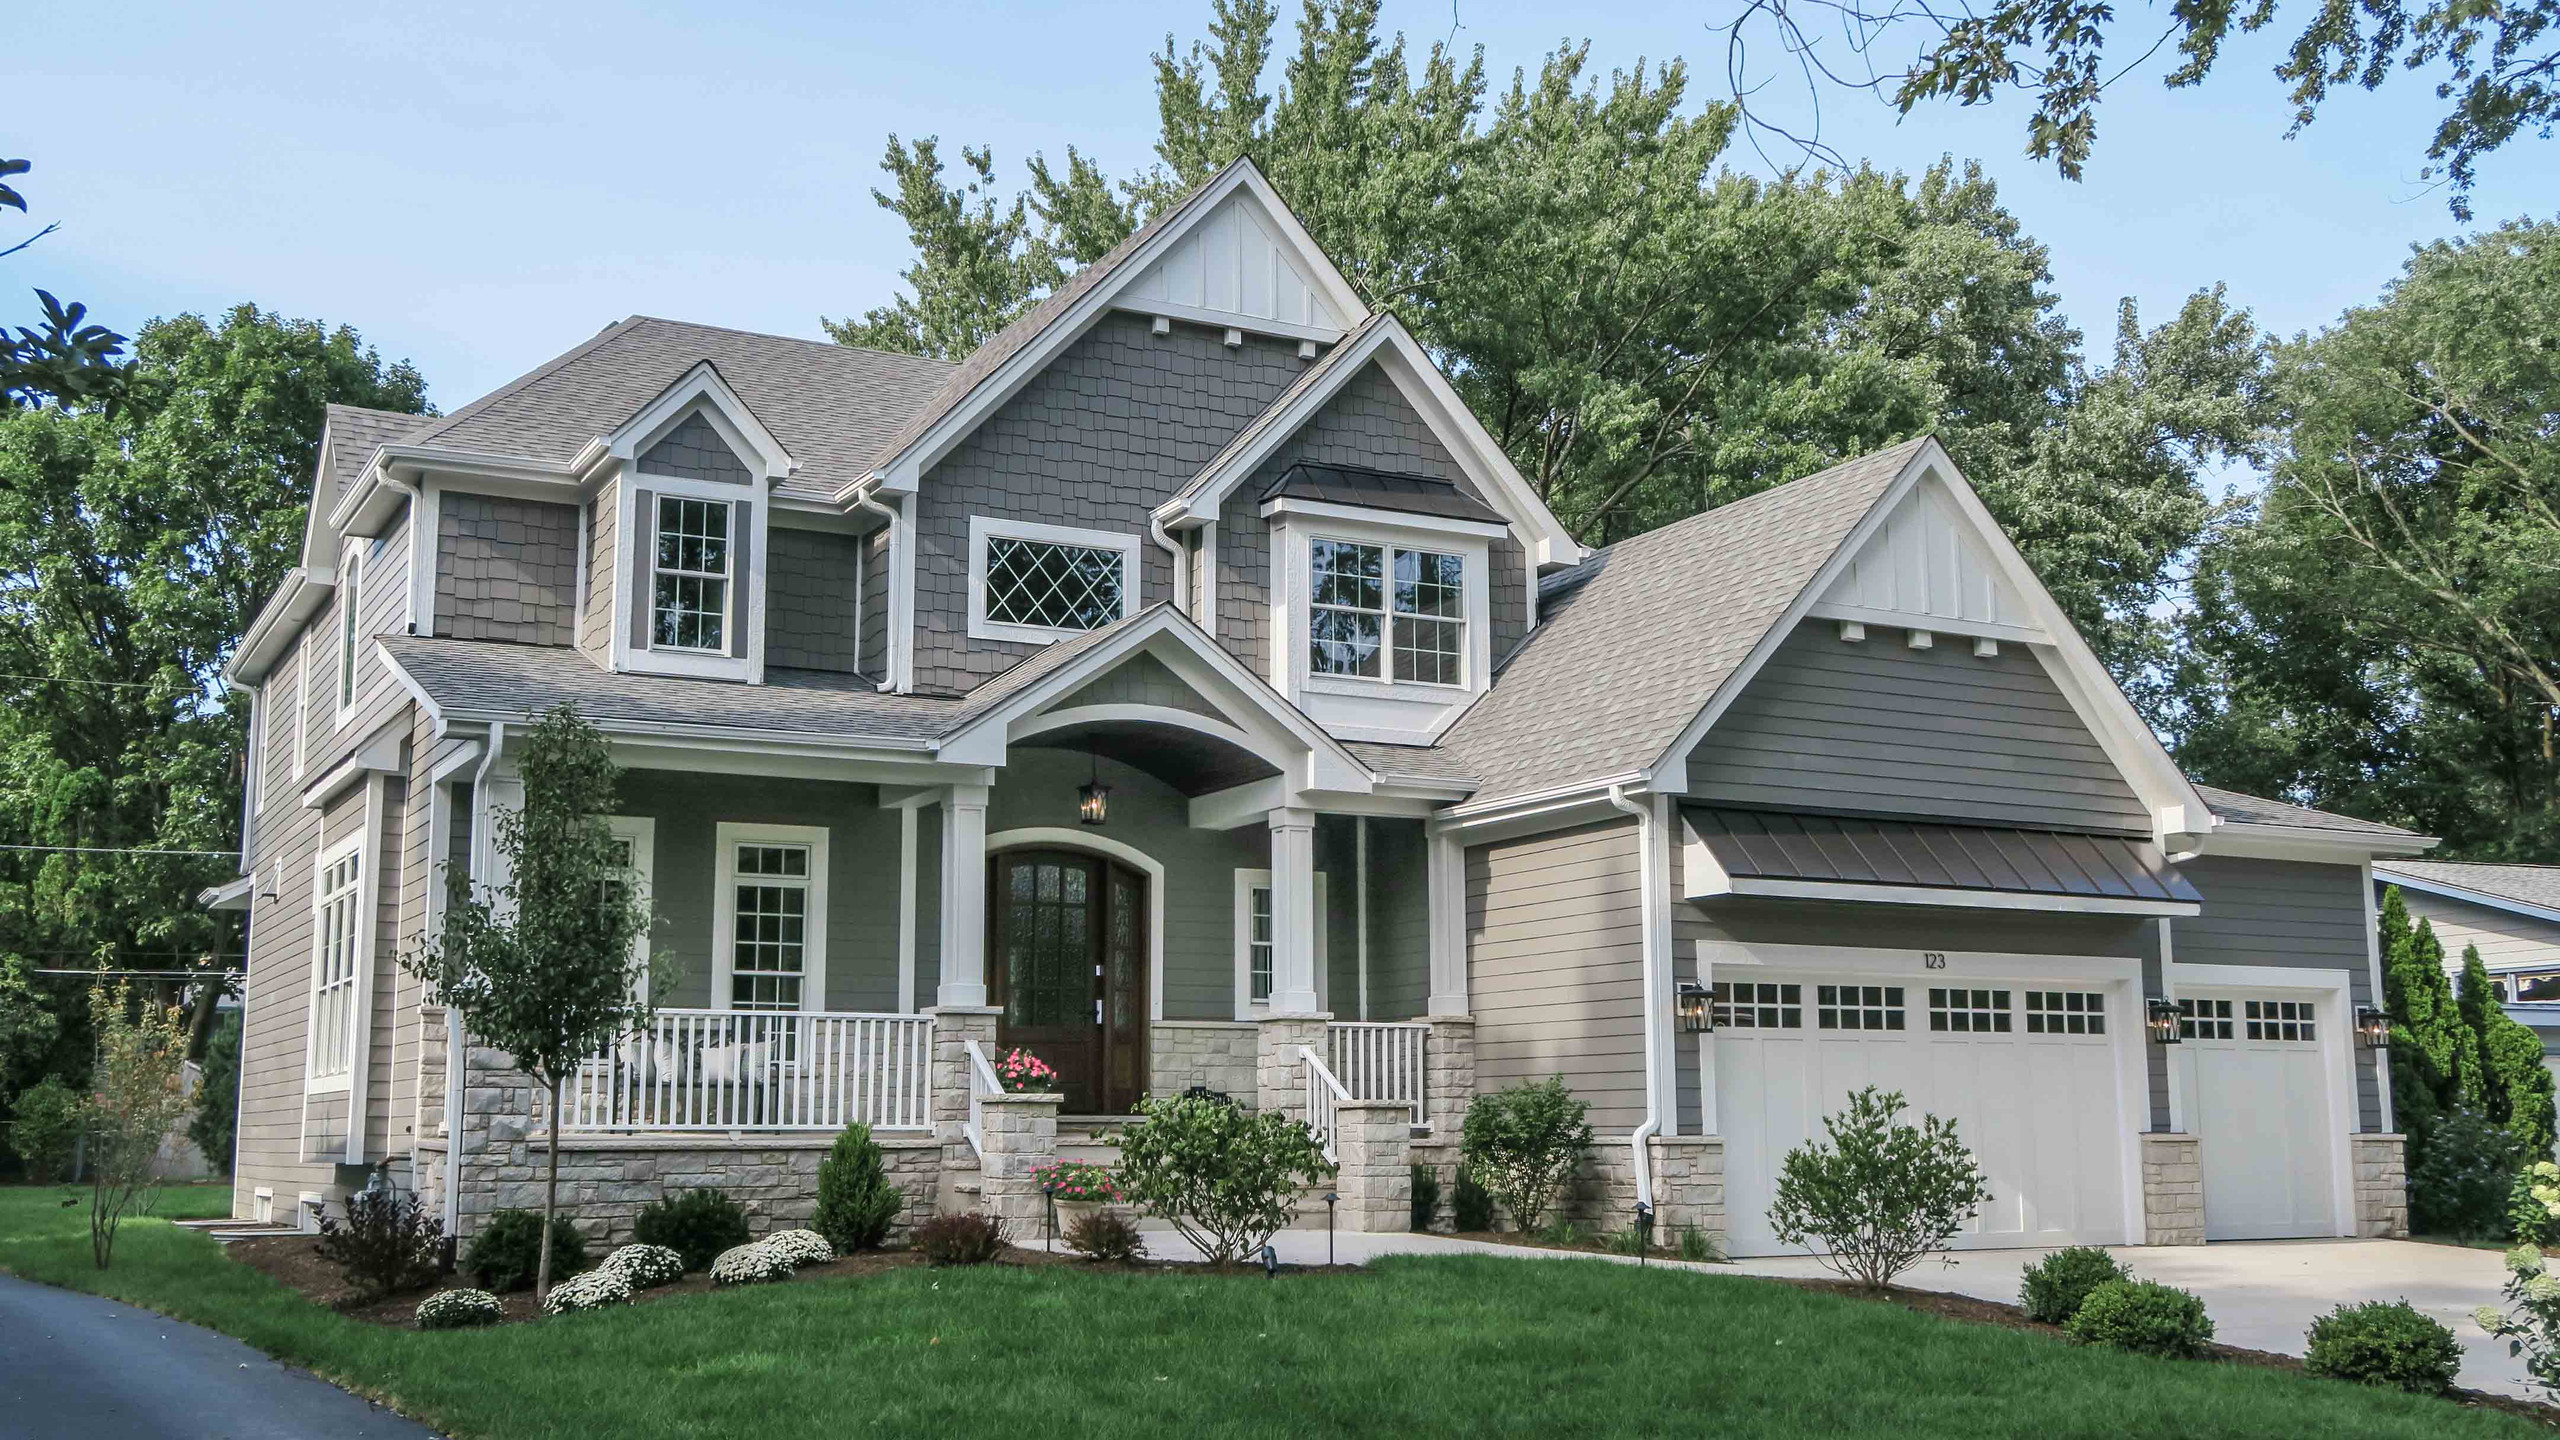 123 fernwood naperville - autumn homes e